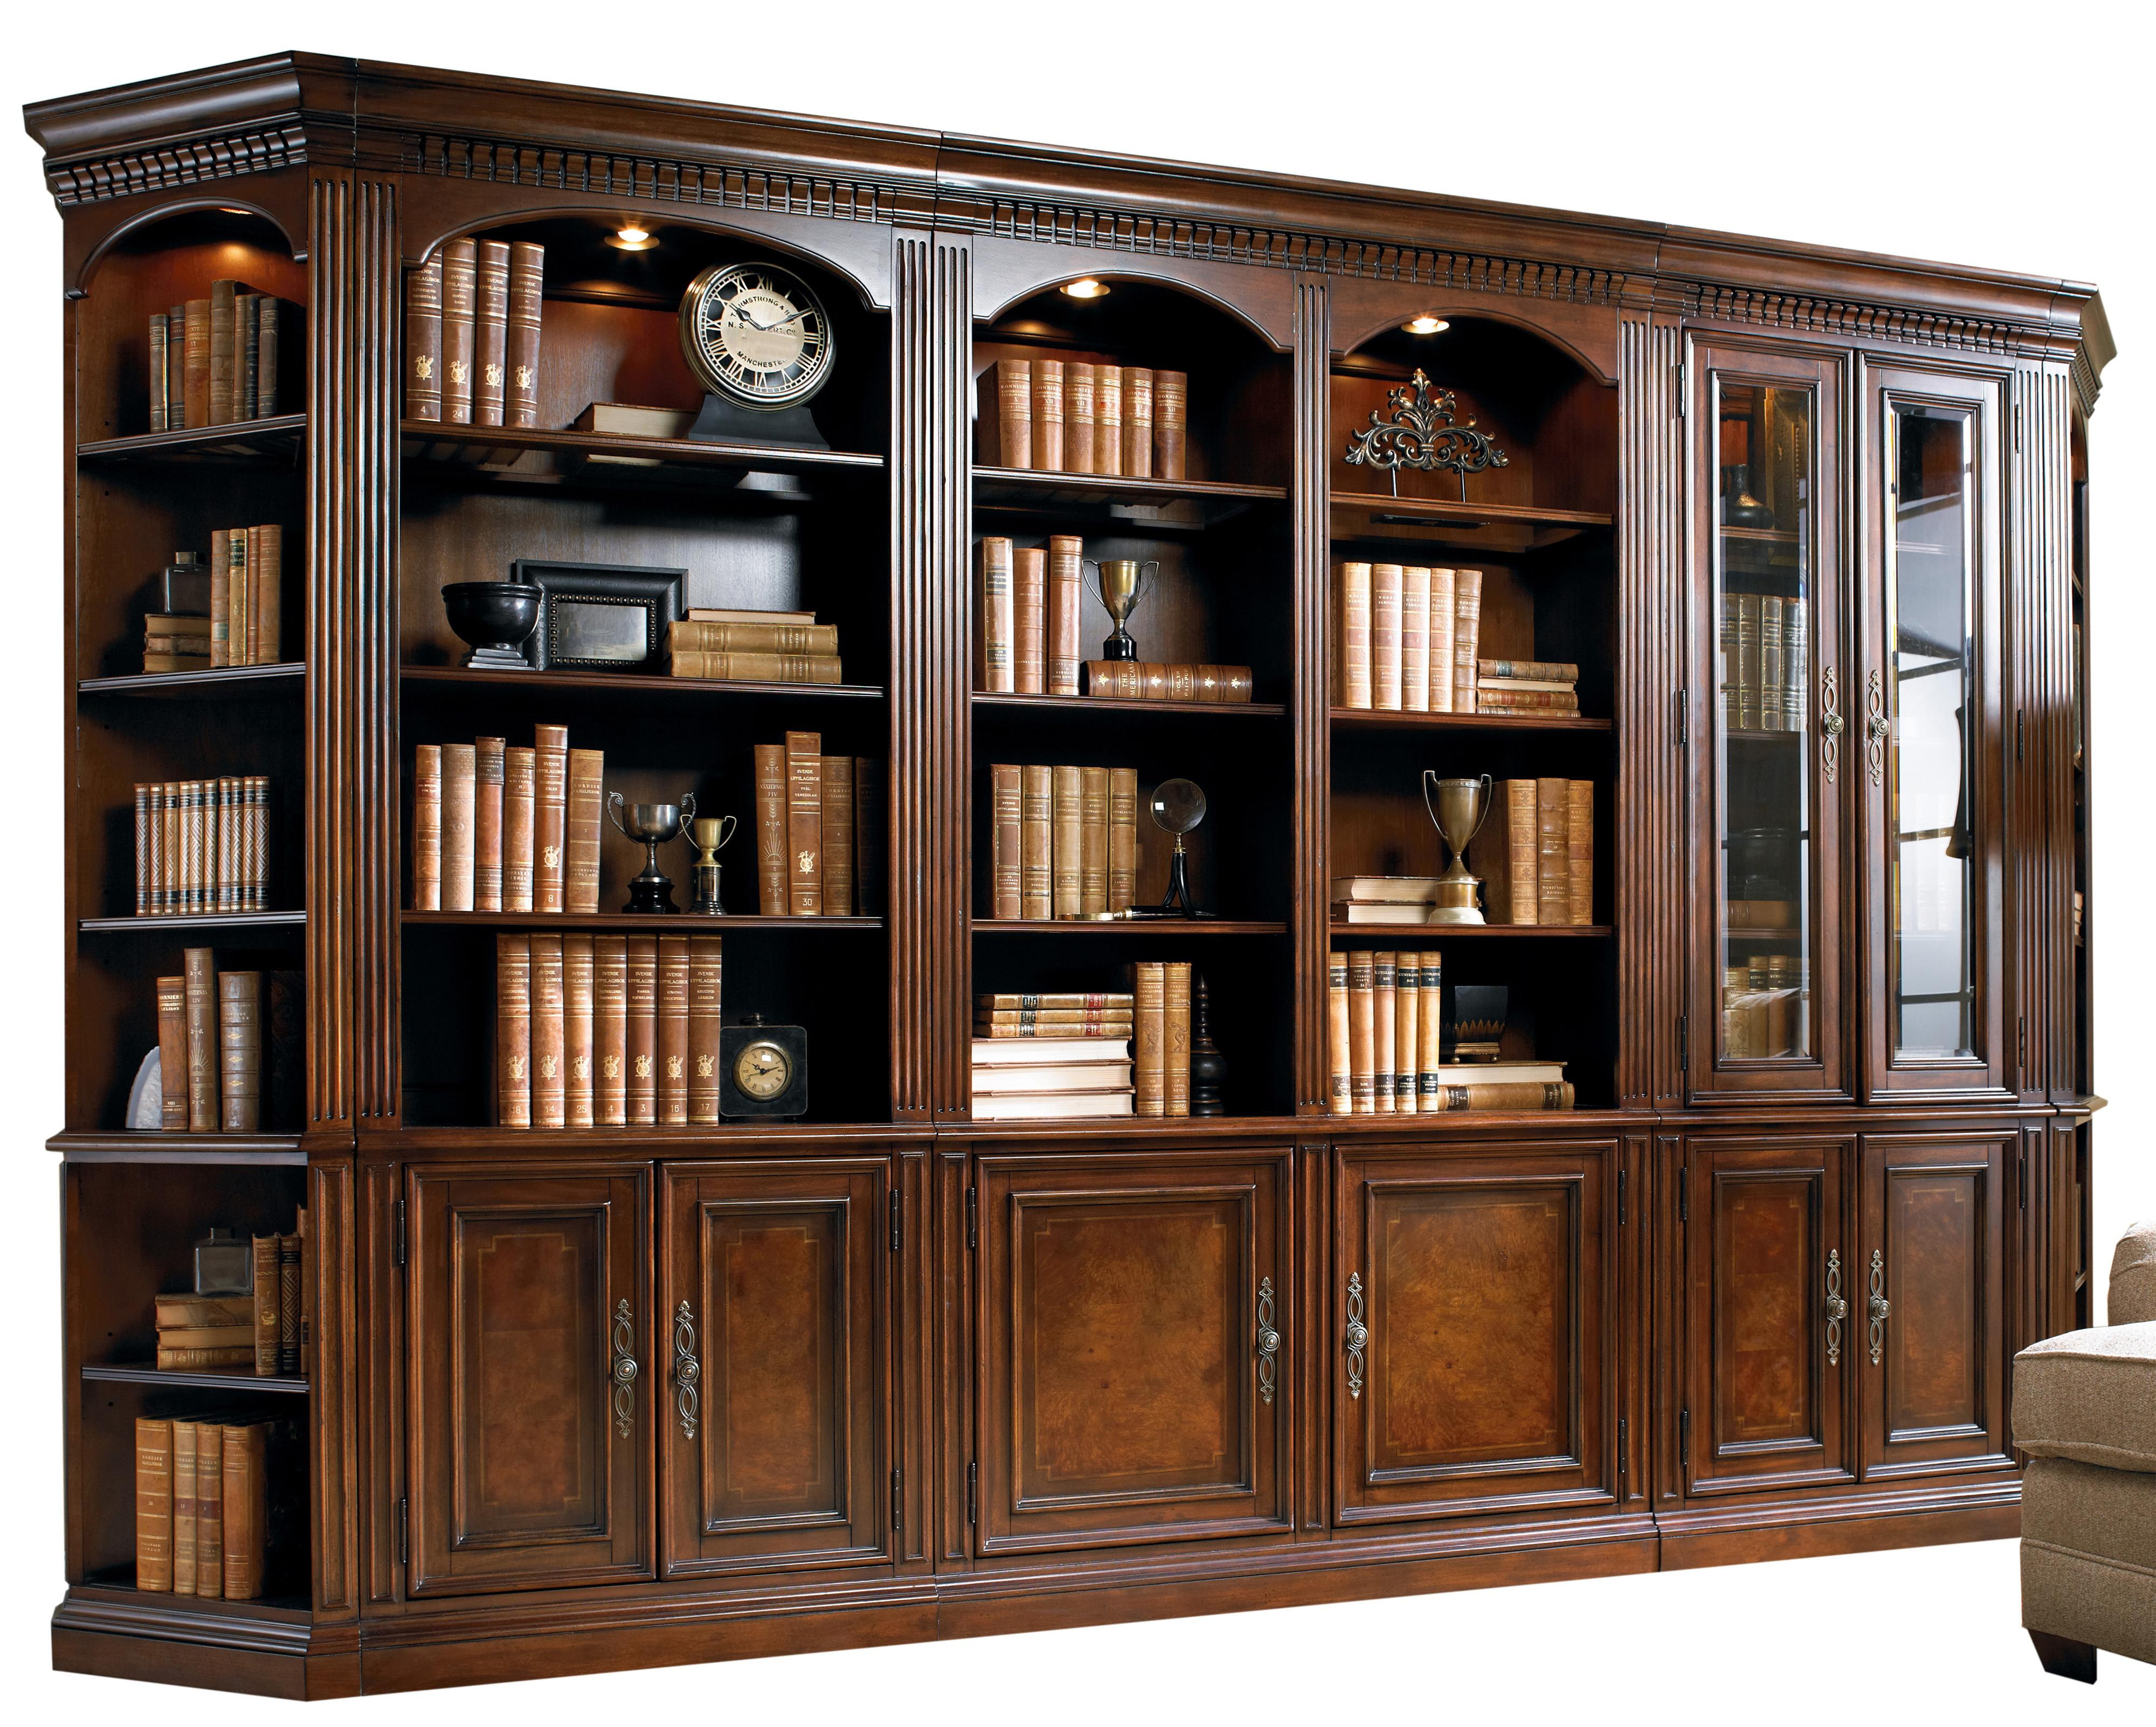 Hamilton Home European Renaissance II Five-Piece Library Wall Unit - Item Number: 374-10-446+447+448+2x450